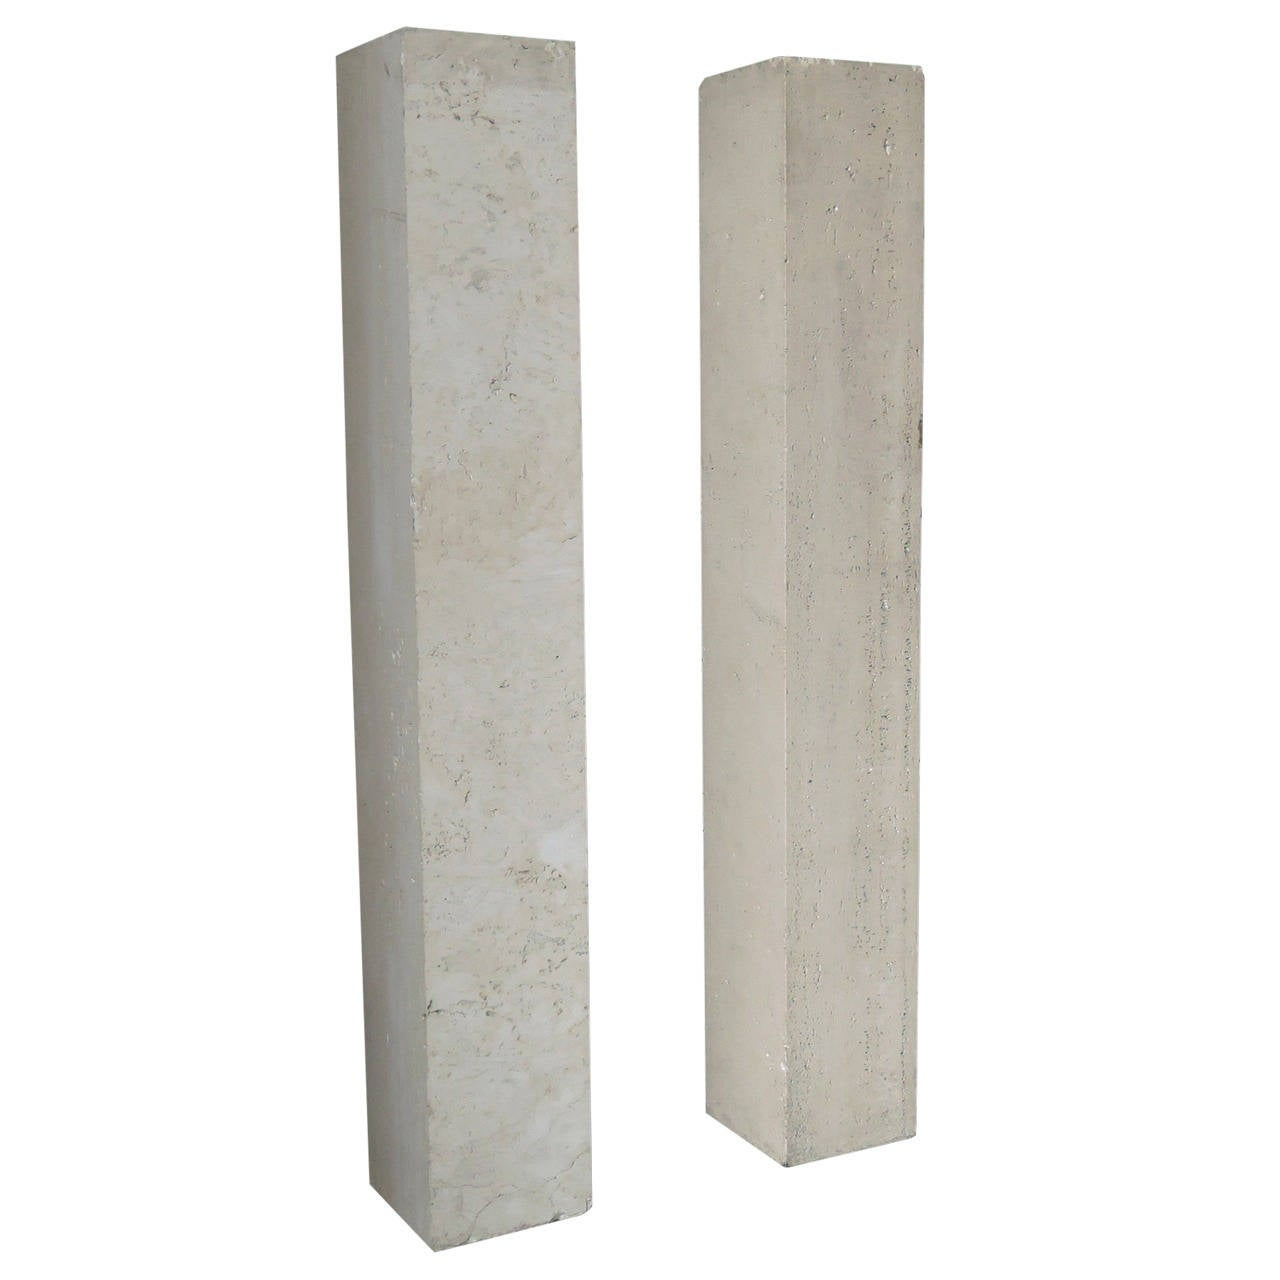 Pair of French Art Deco Travertine Pedestals in the Manner of Marc du Plantier